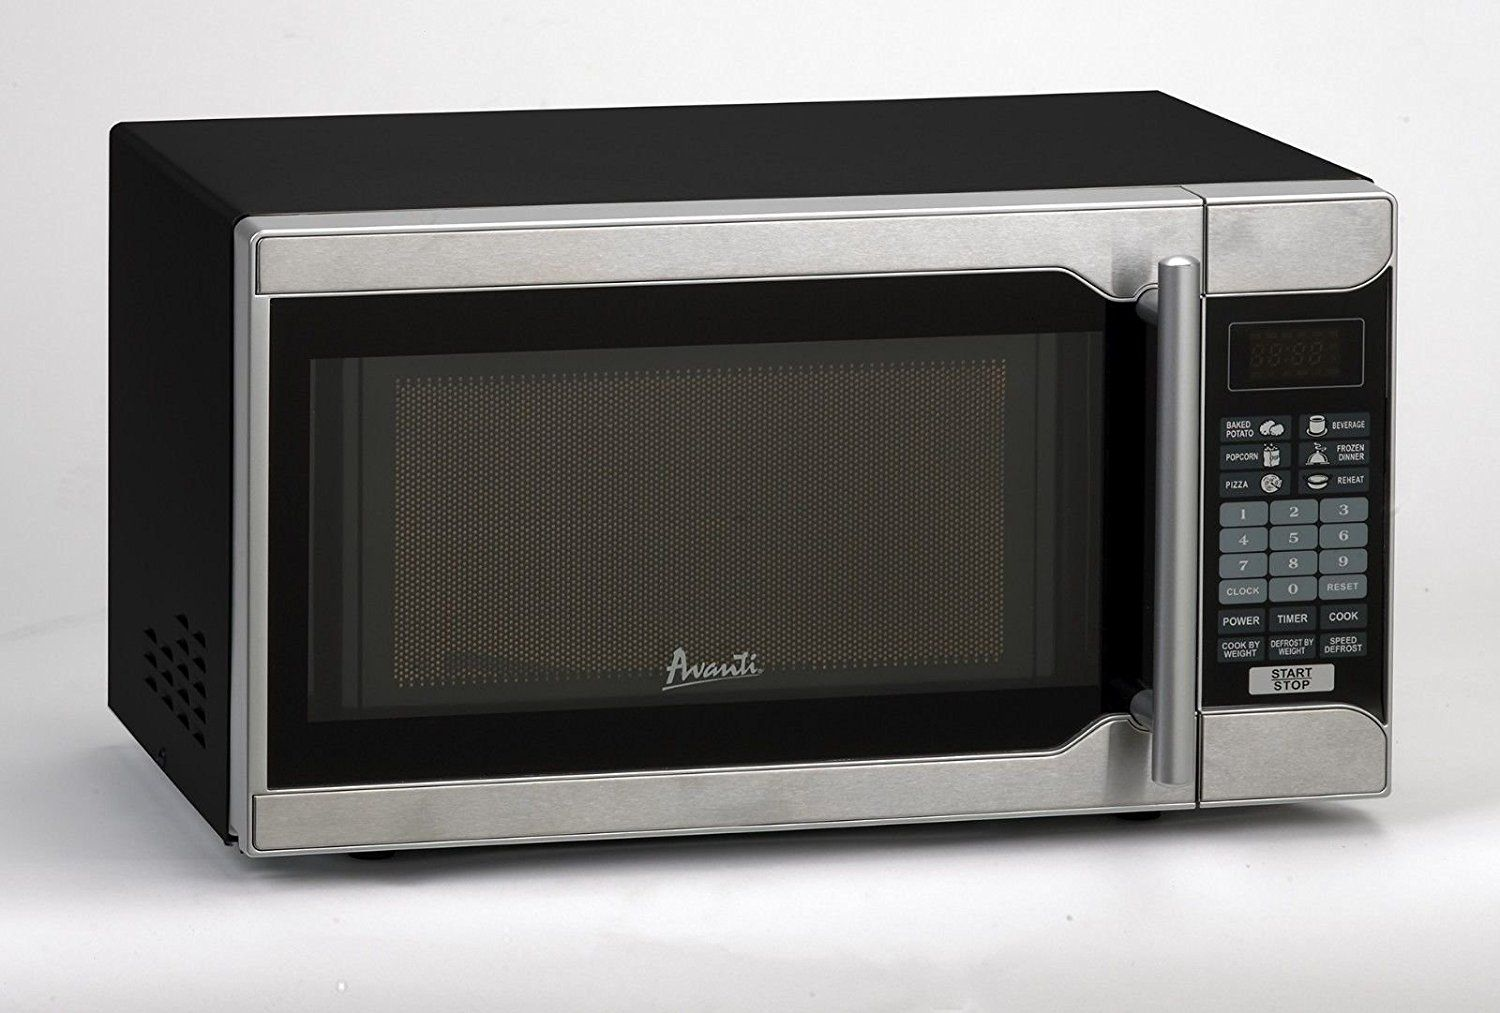 0 7 Cu Ft 700w Countertop Microwave This Is An Amazon